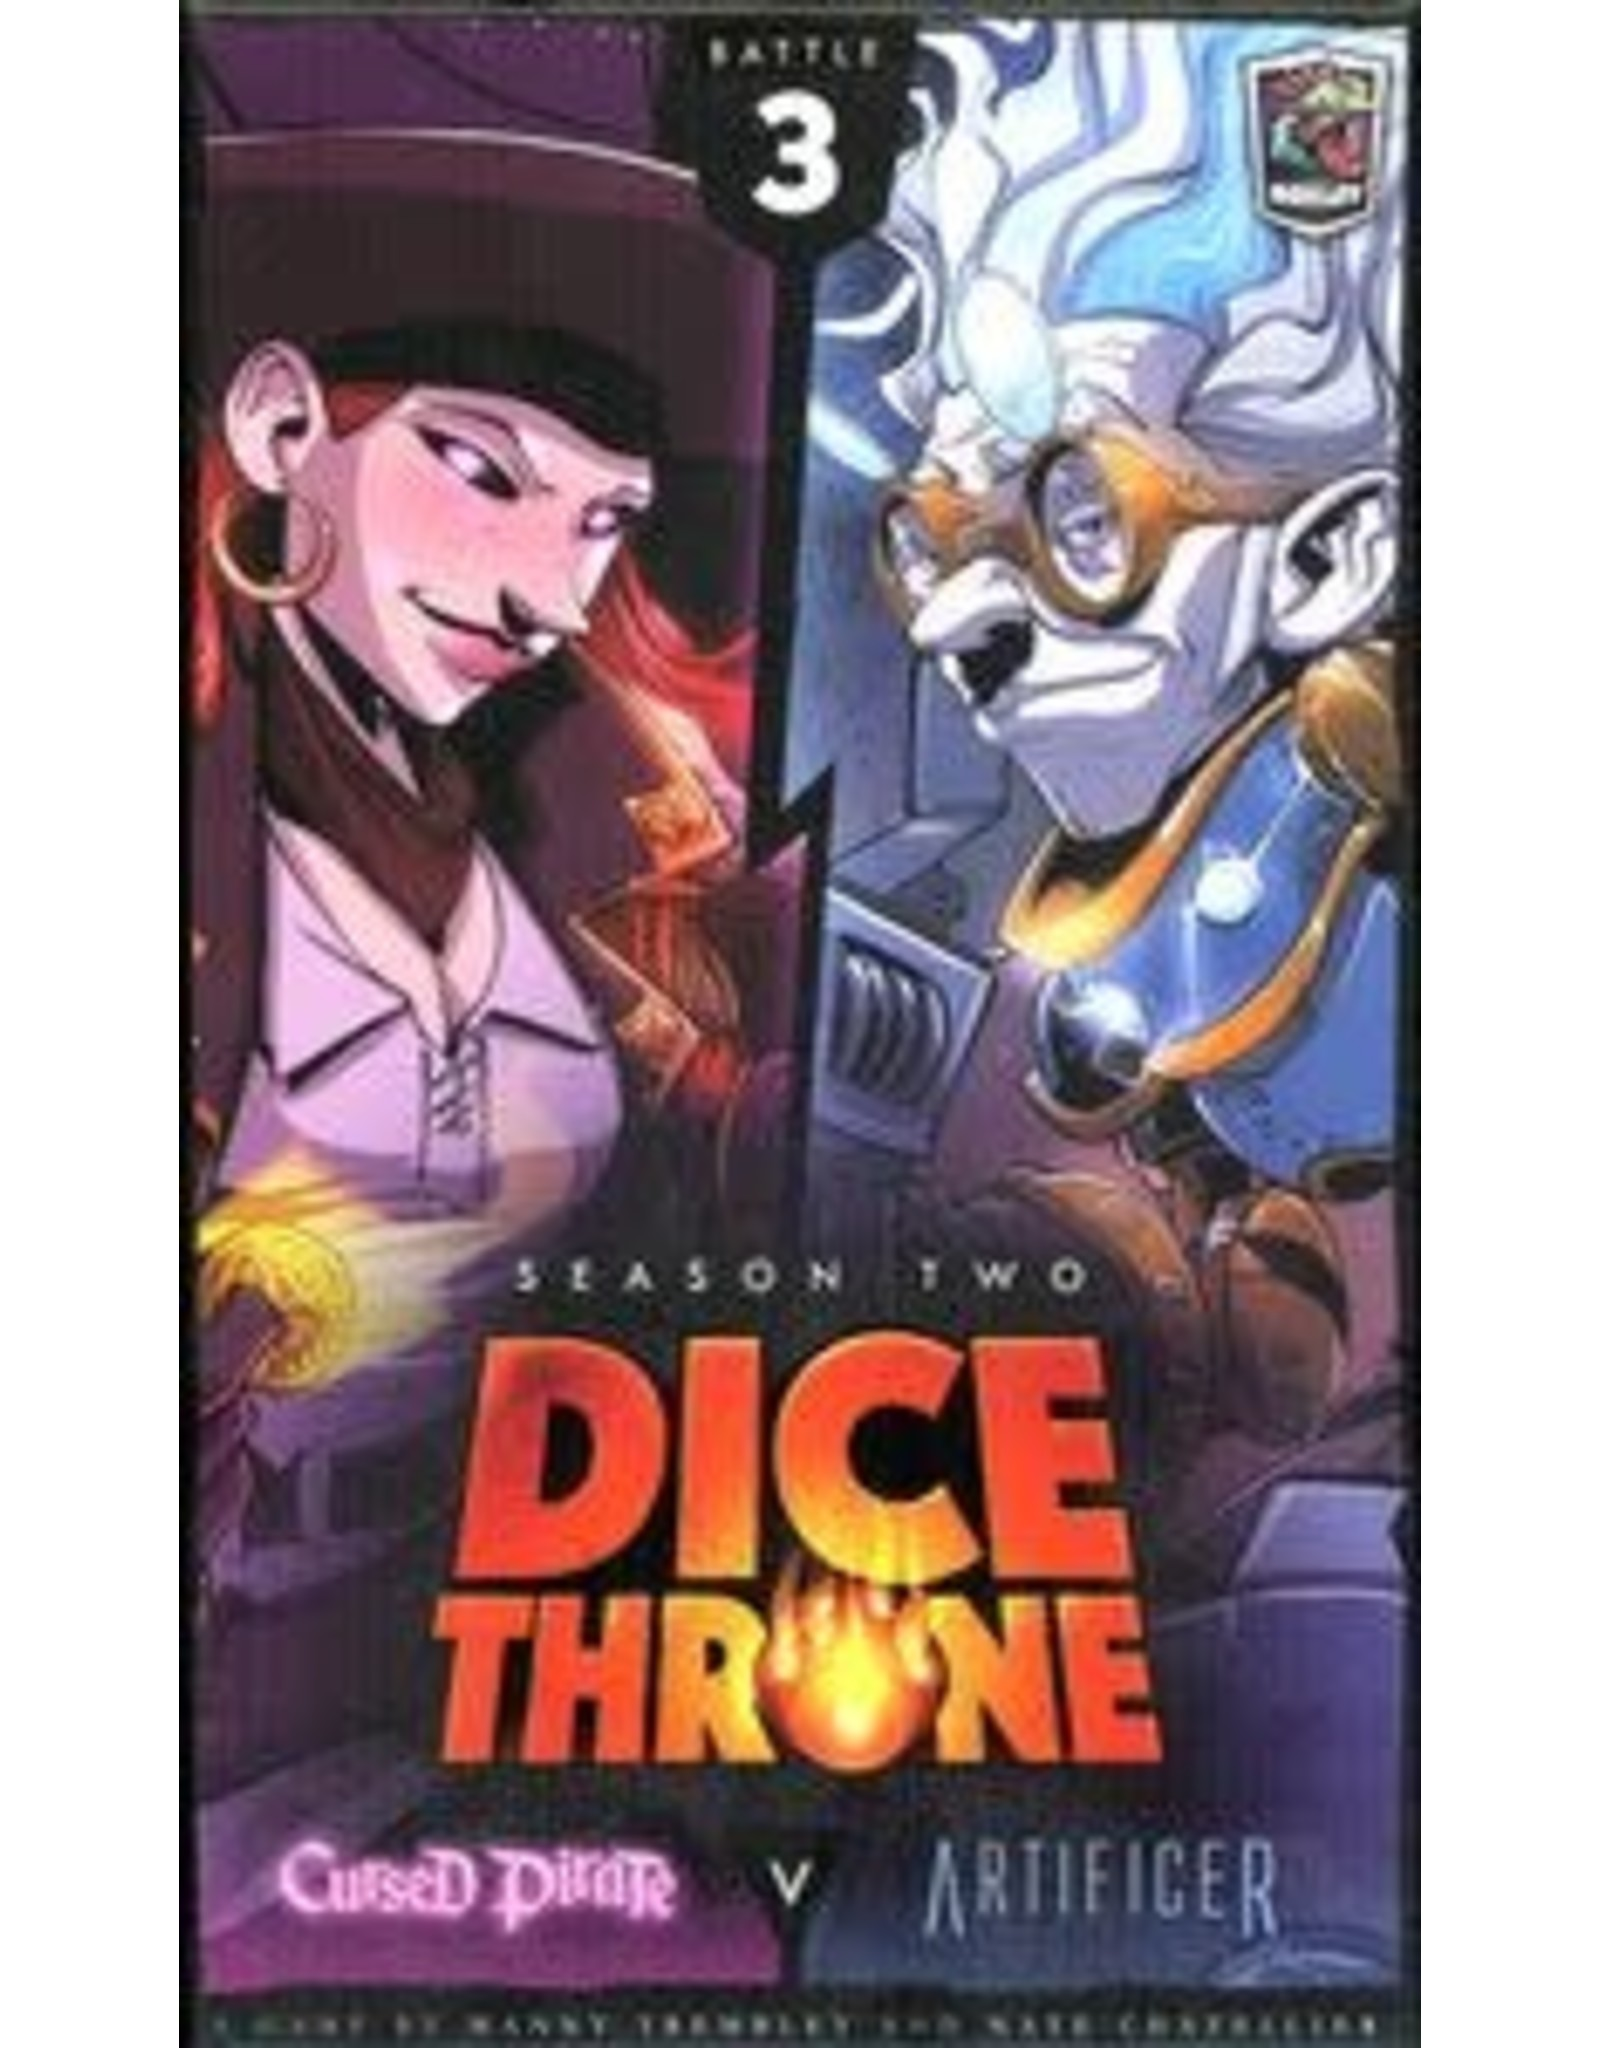 Dice Throne Season 2: Cursed Pirate vs. Artificer